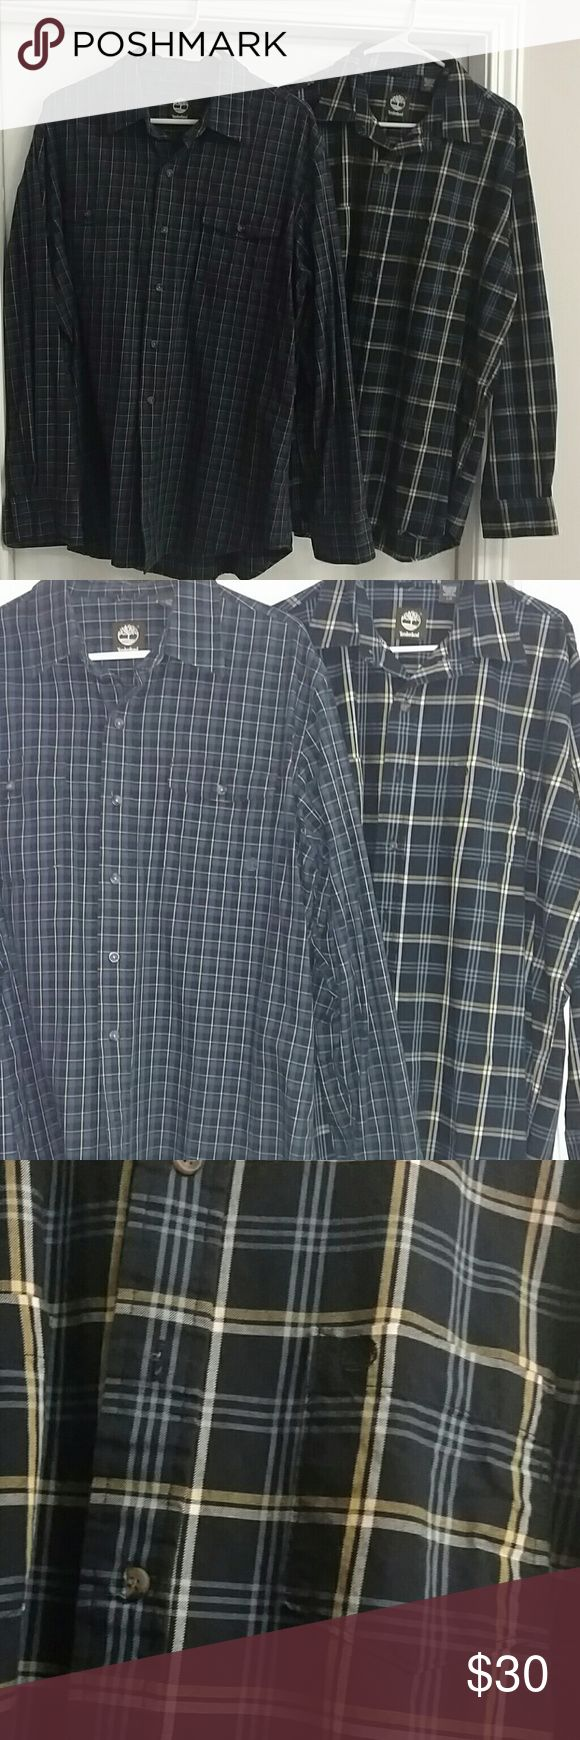 2 Timberland shirt long sleeves 2 shirts. Large size. Great material. Worn only few times. Good condition. Timberland Shirts Casual Button Down Shirts